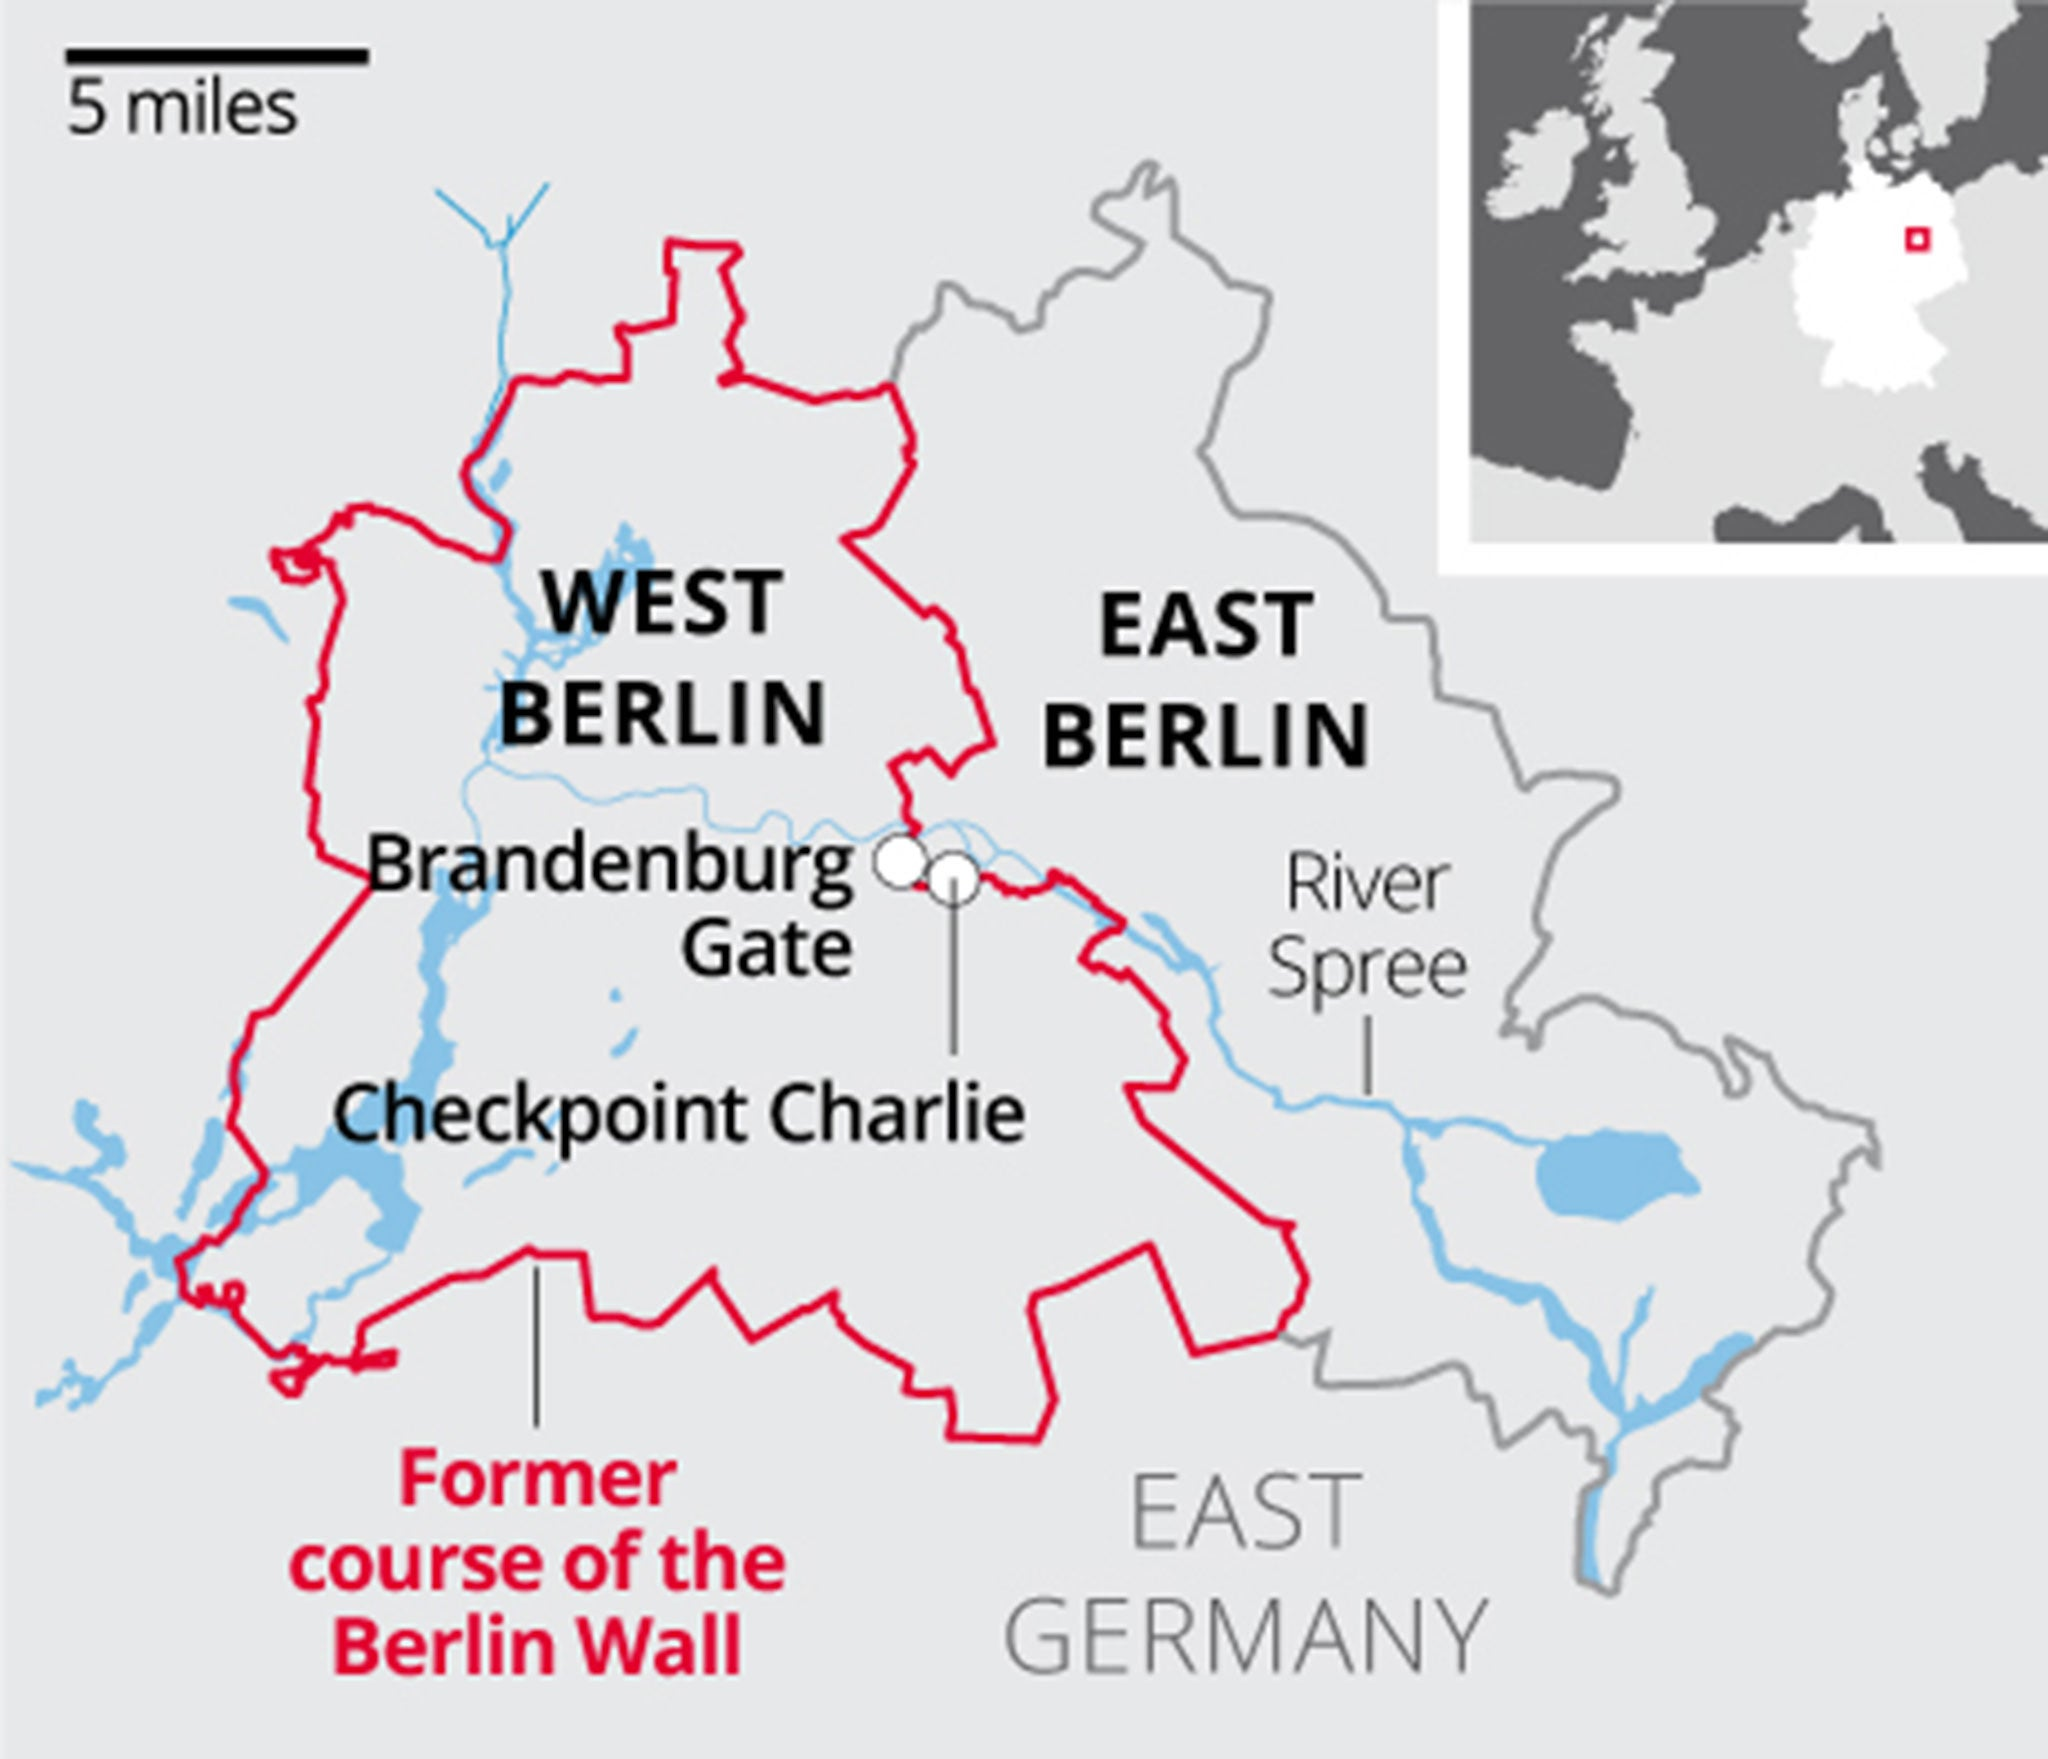 Berlin Germany World Map.Berlin Wall What You Need To Know About The Barrier That Divided